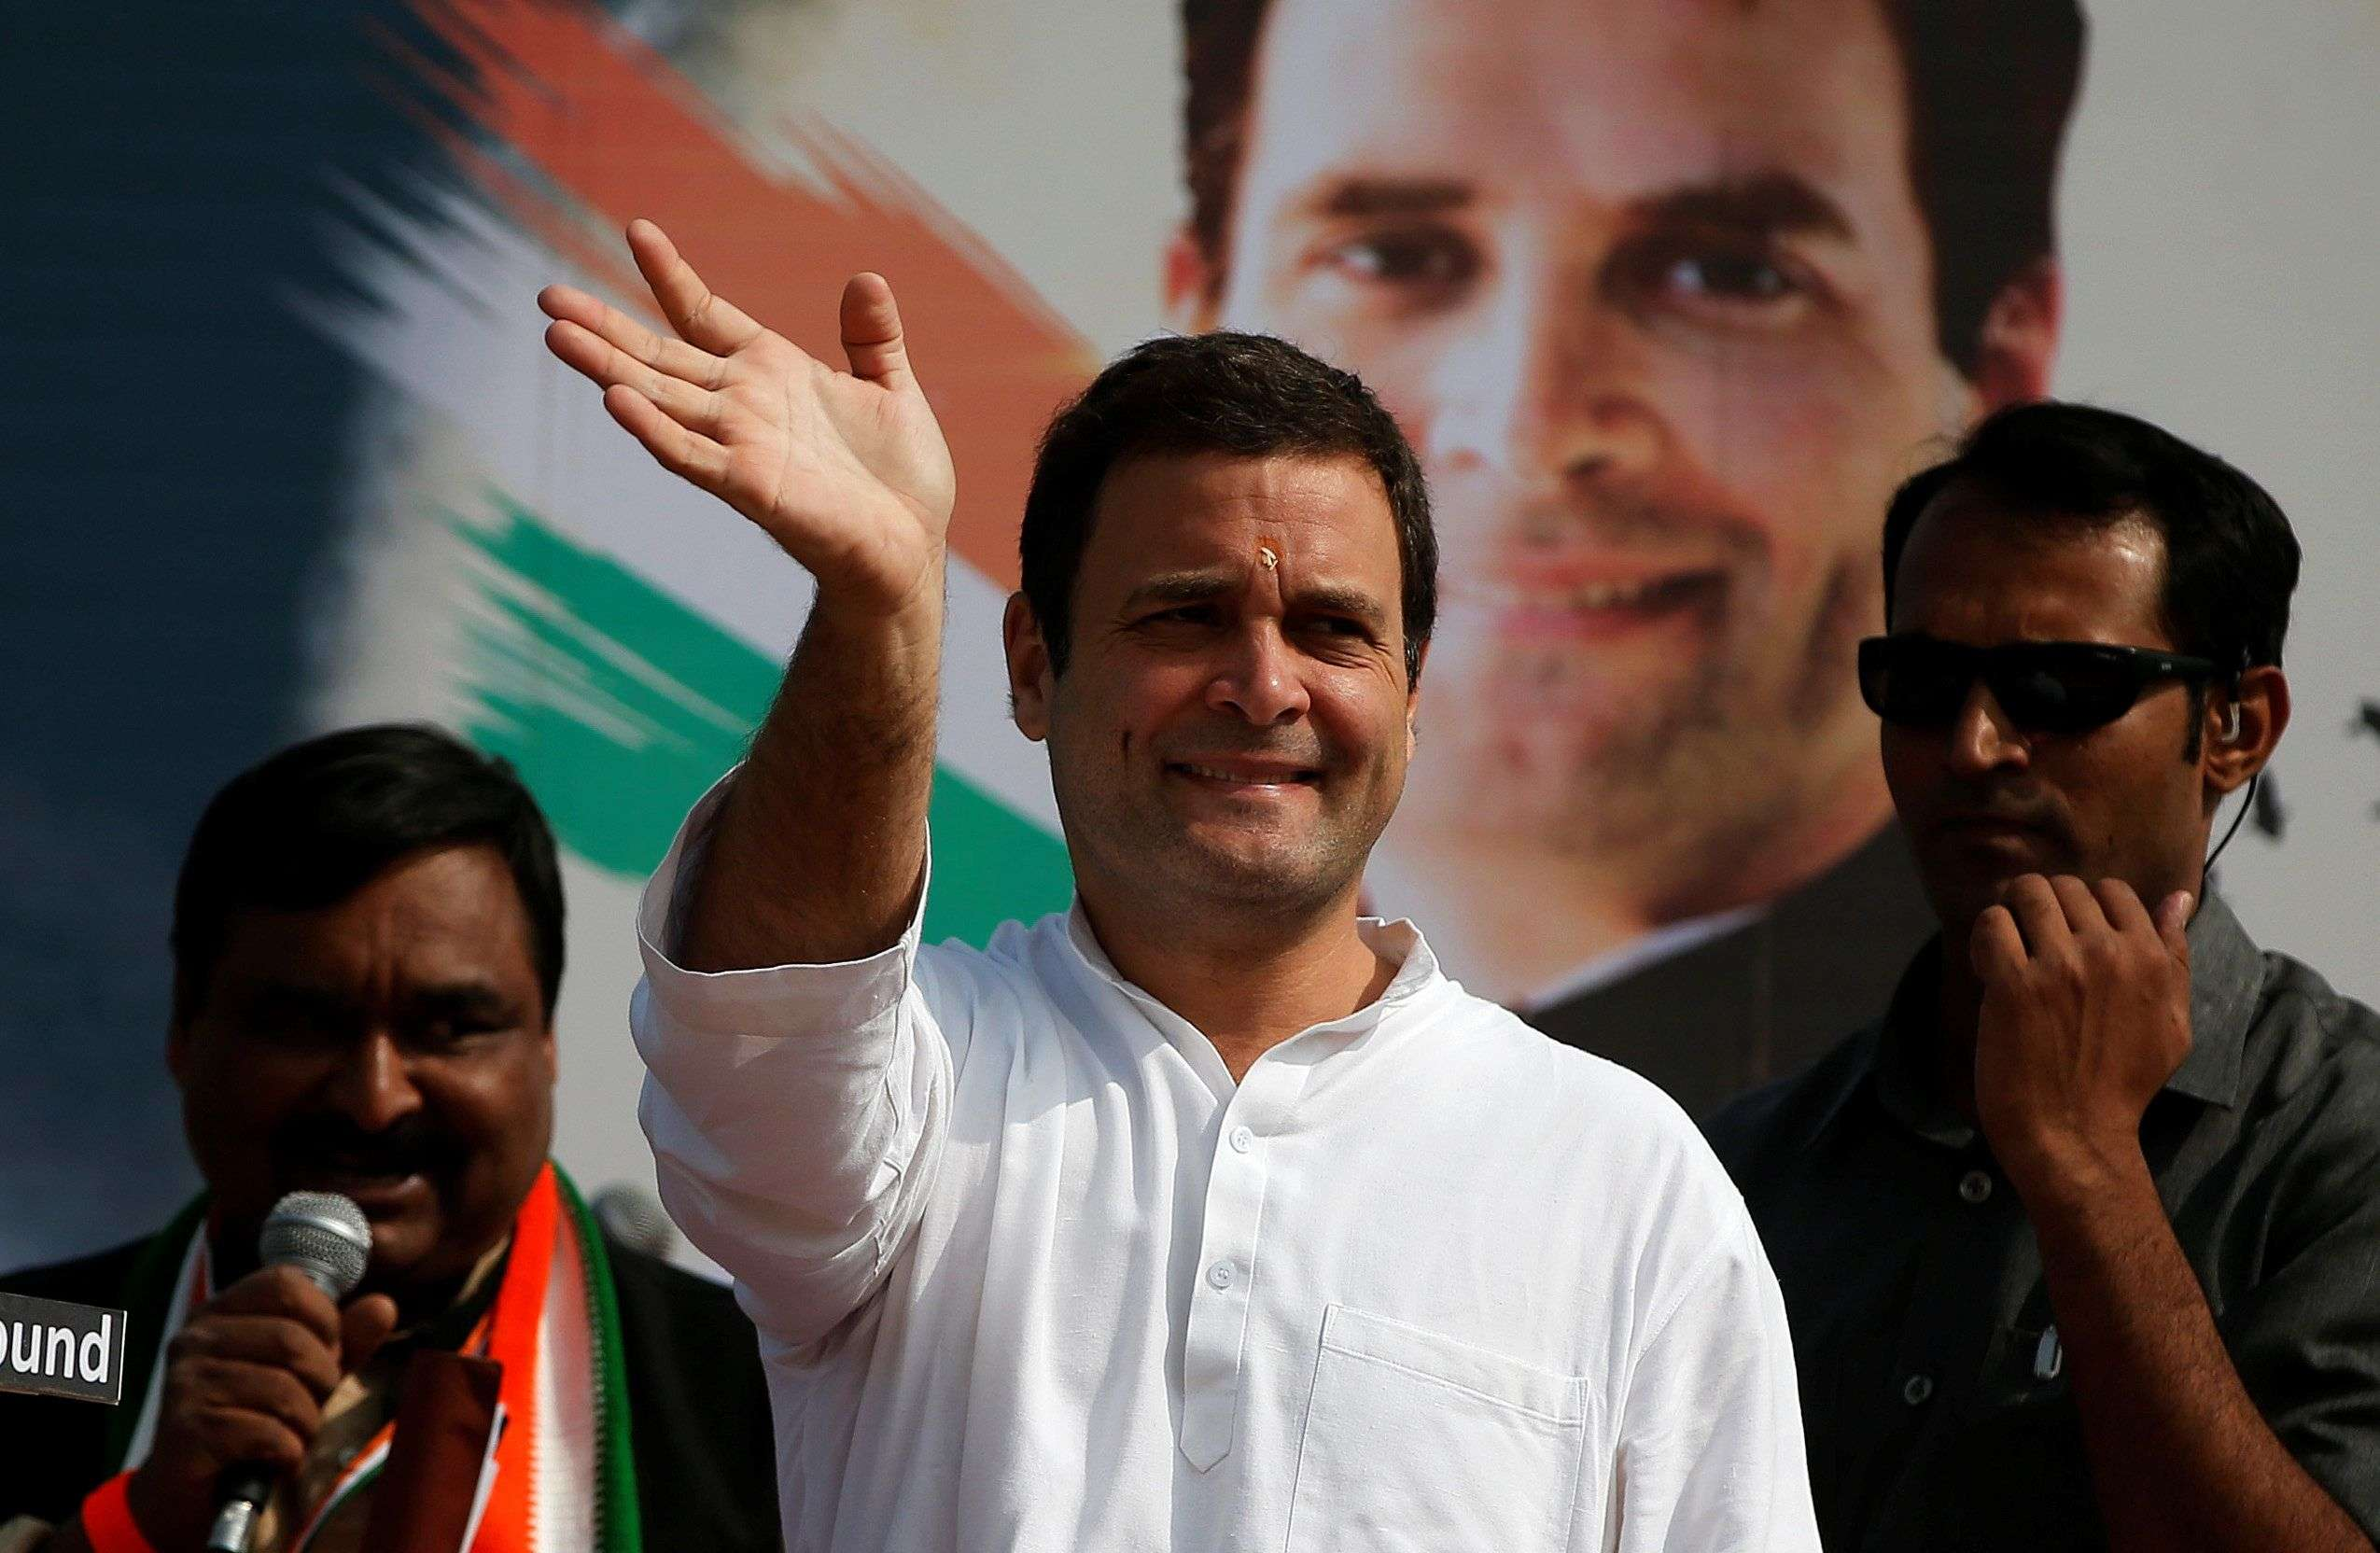 Let love win over hate, says Congress in V-day tweet - Times of India